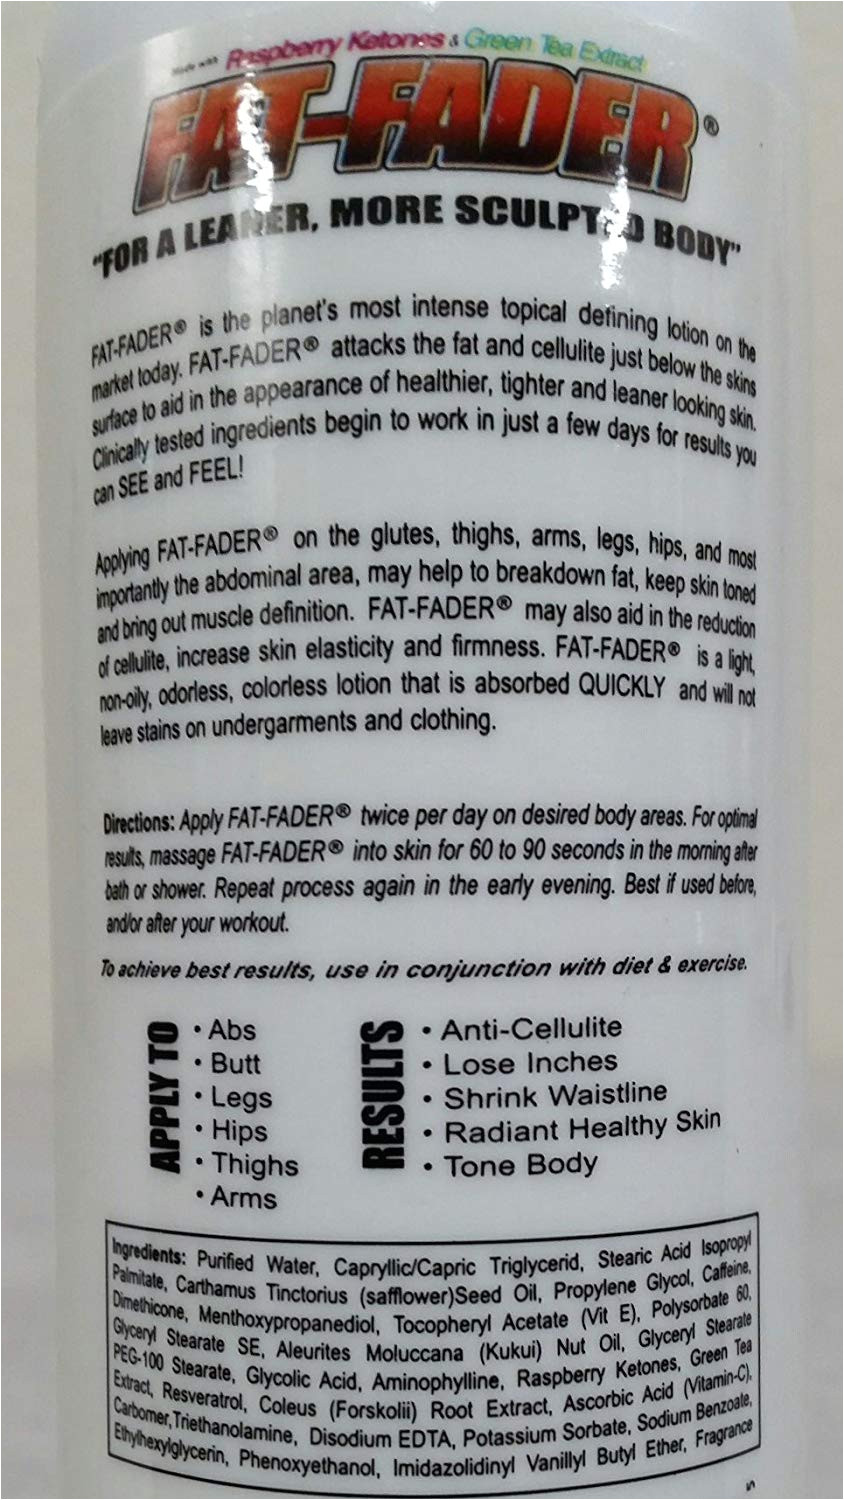 amazon com fat fader body toning lotion w 2 5 aminophylline raspberry ketones 8 fl oz fat fader cream beauty